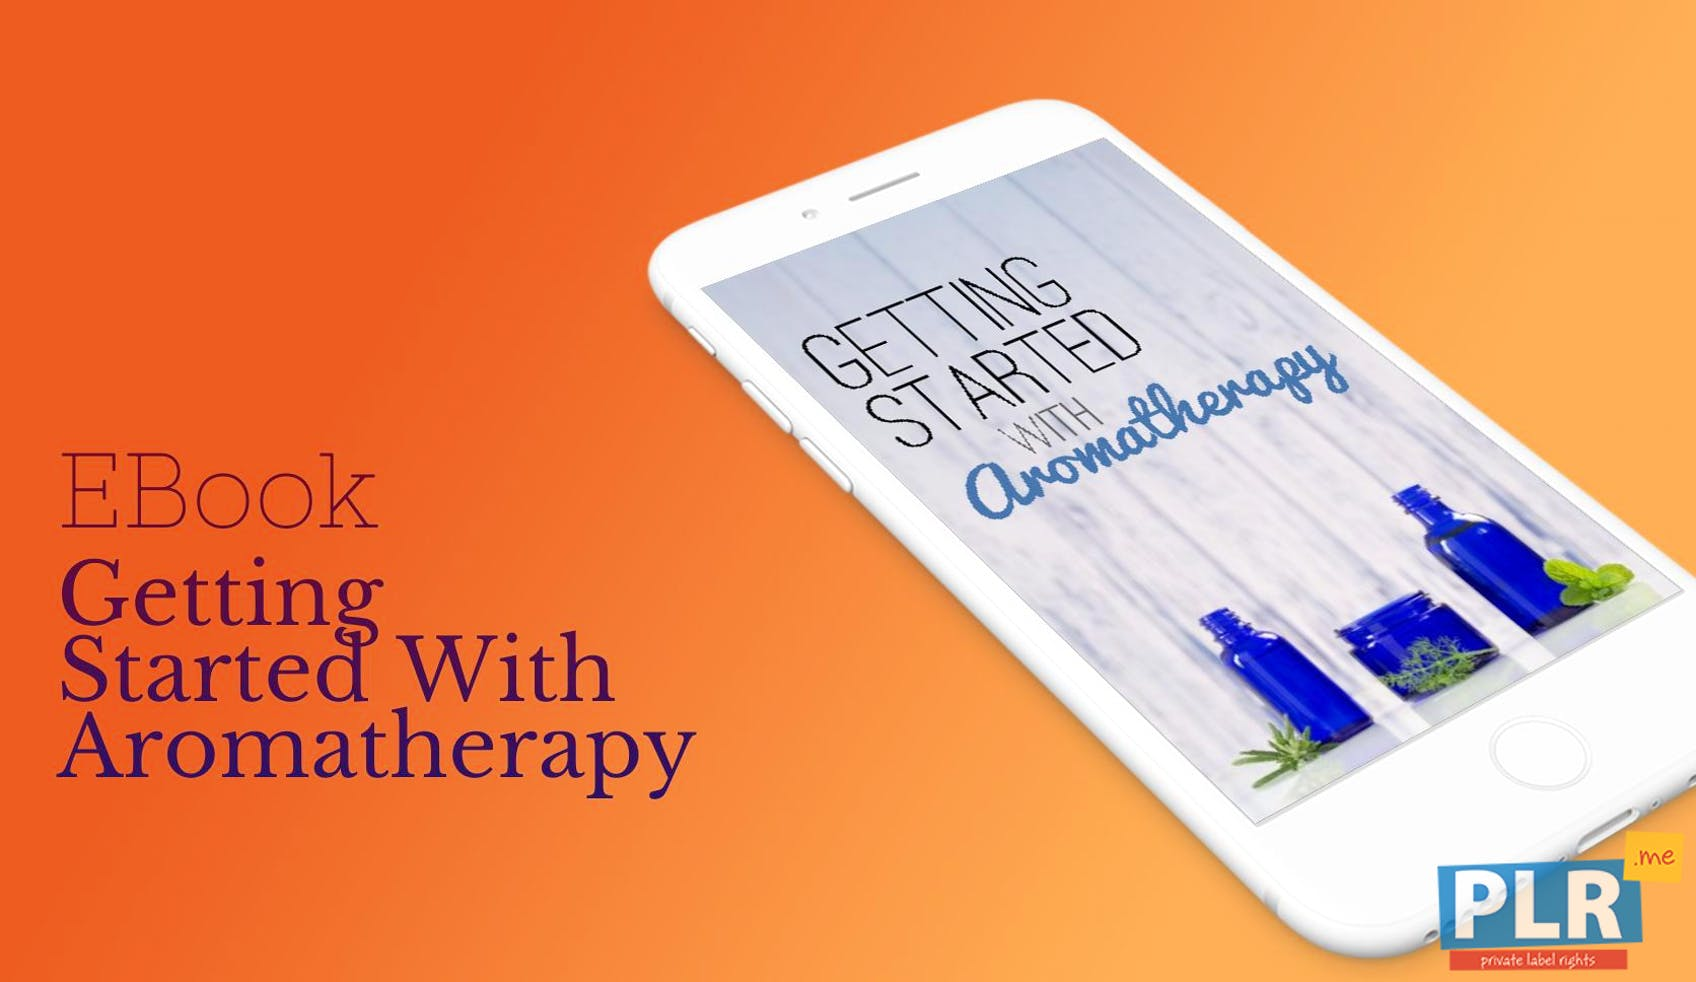 Getting Started With Aromatherapy